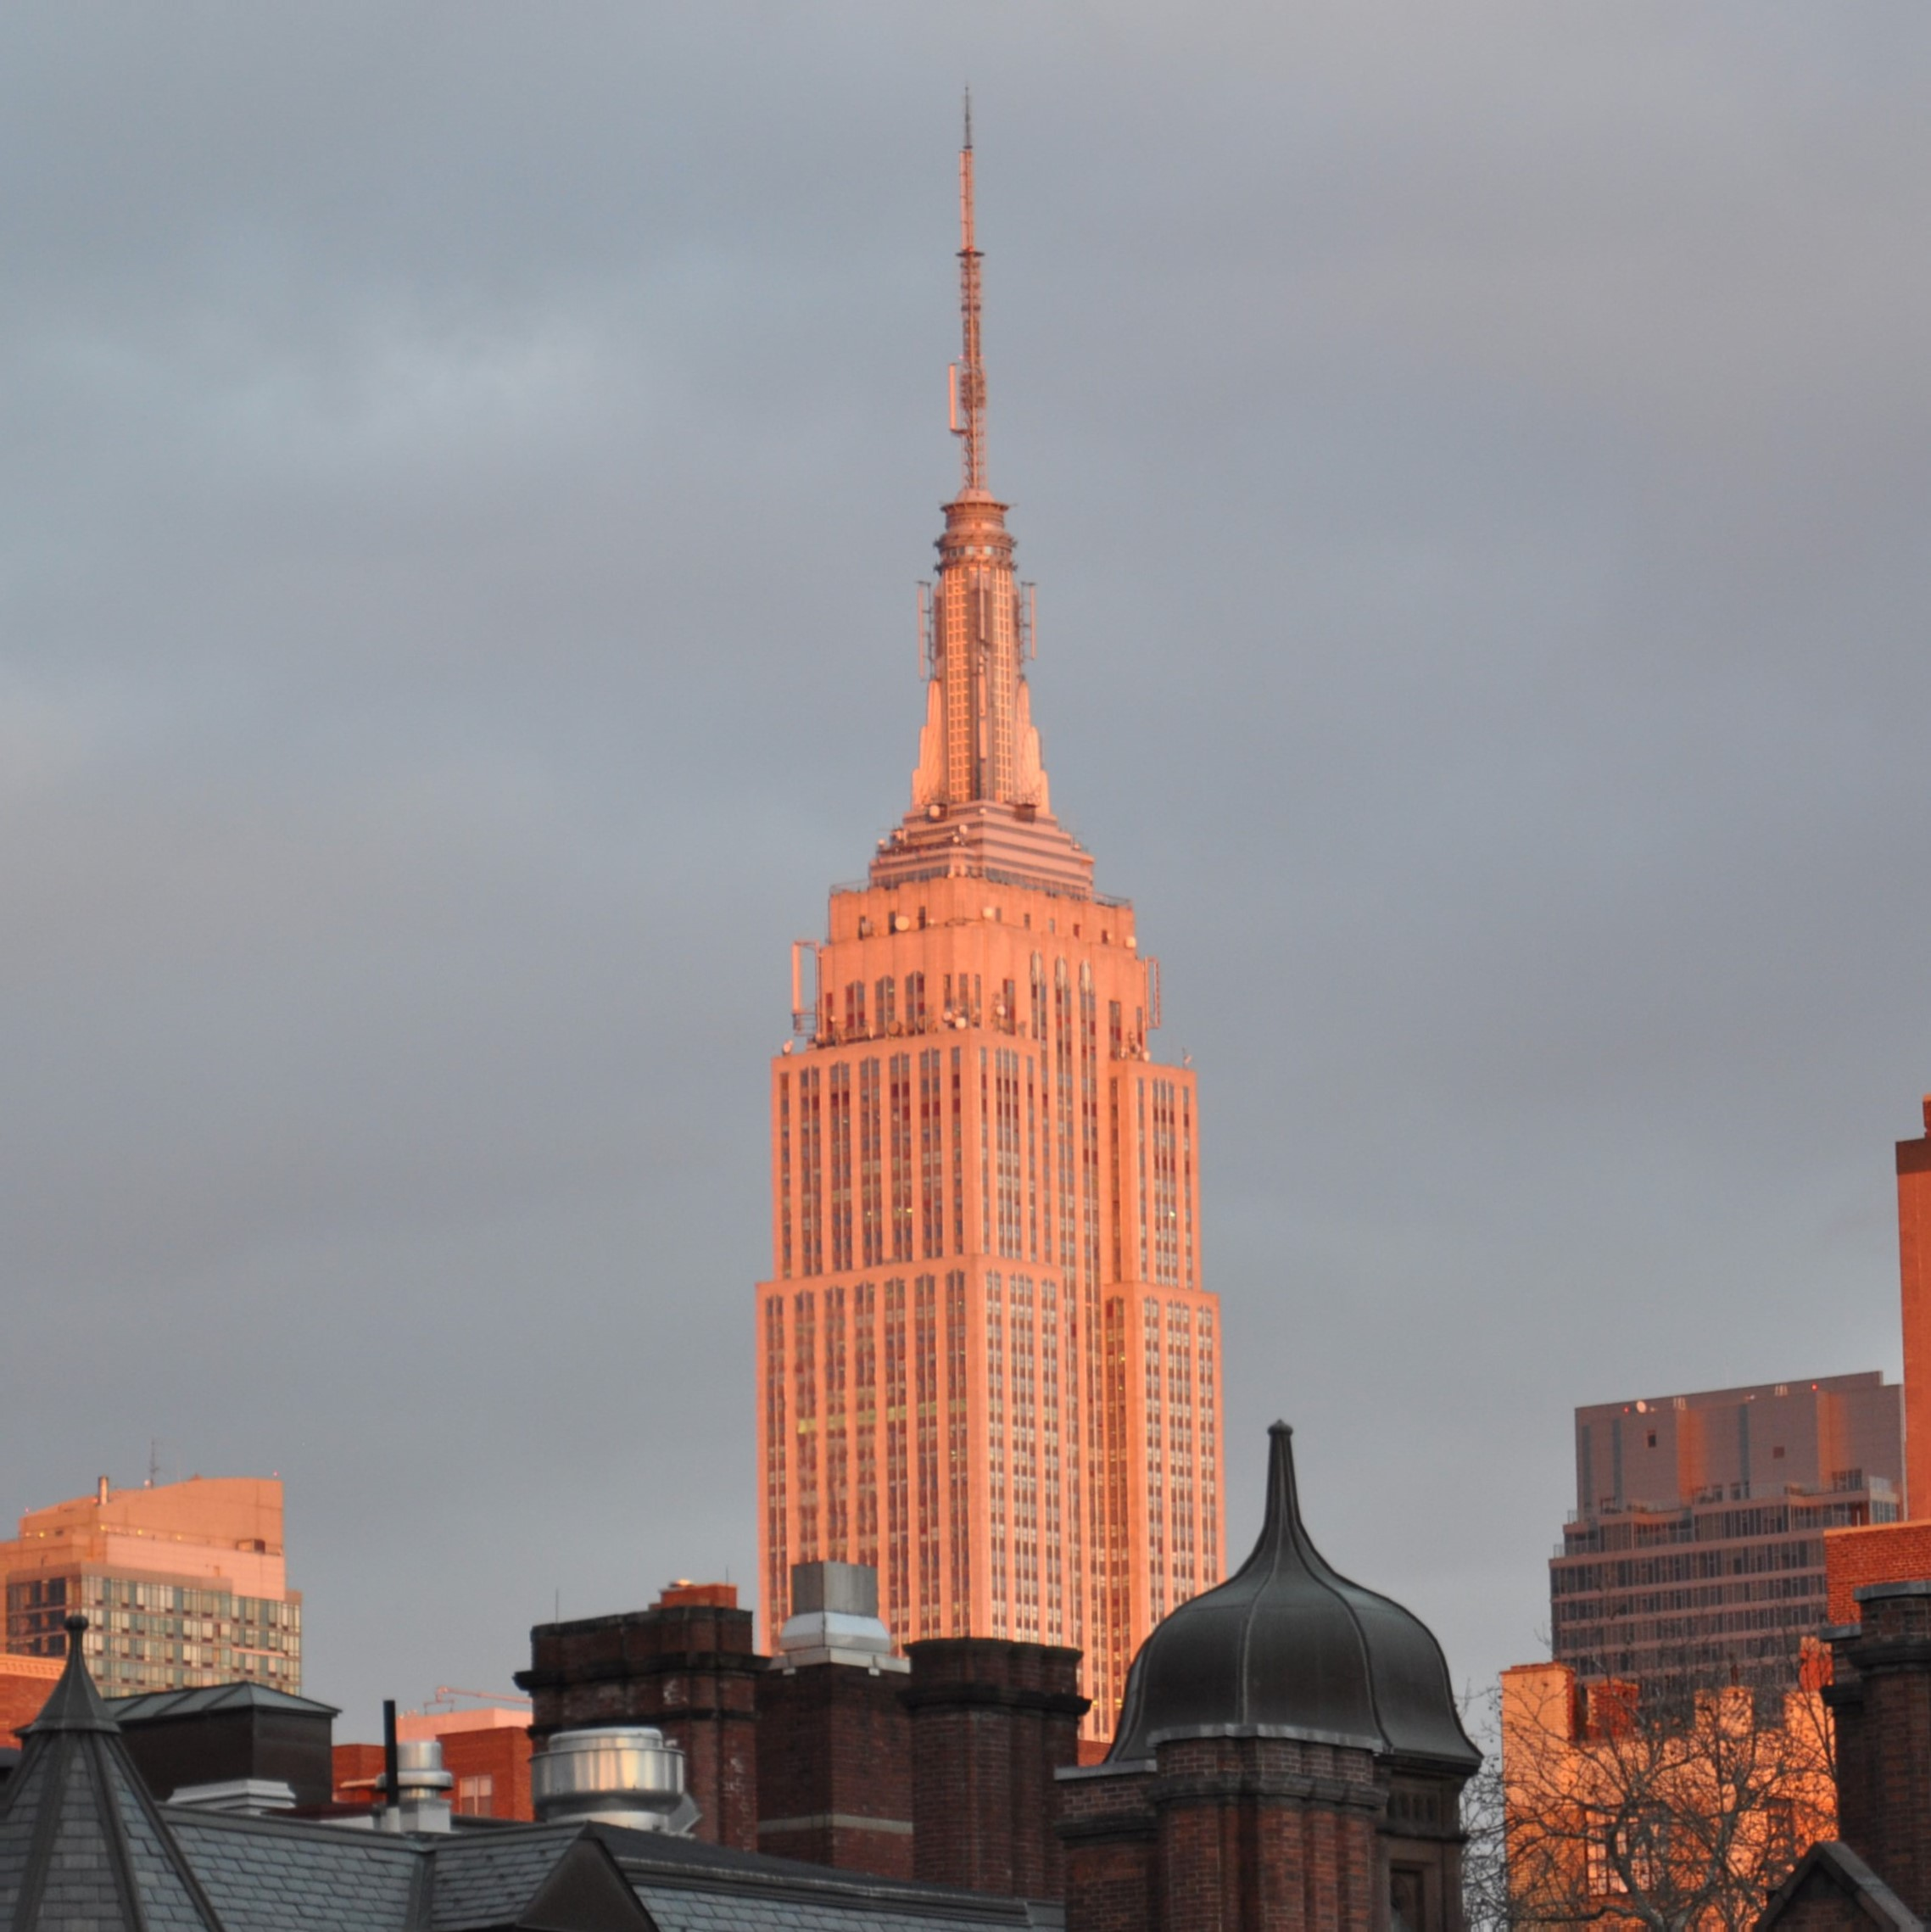 The Empire State Building seen from the Highline, rising above the Chelsea skyline and bathed in the evening sun in February 2016.